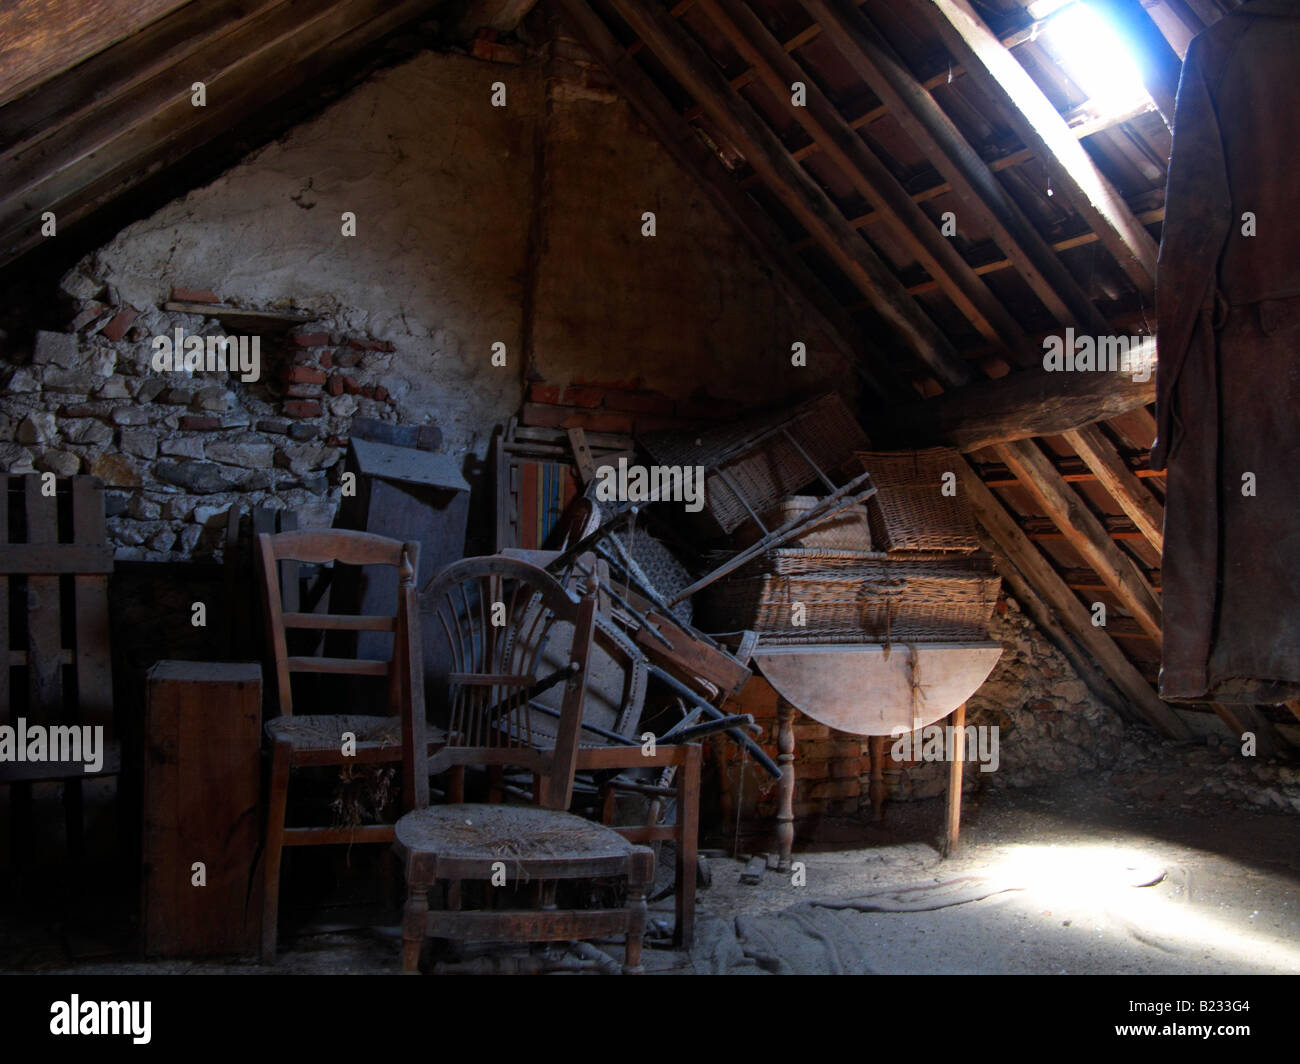 VERY DUSTY ATTIC WITH OLD RELICS AND ANTIQUE FURNITURE IN A FRENCH HOUSE